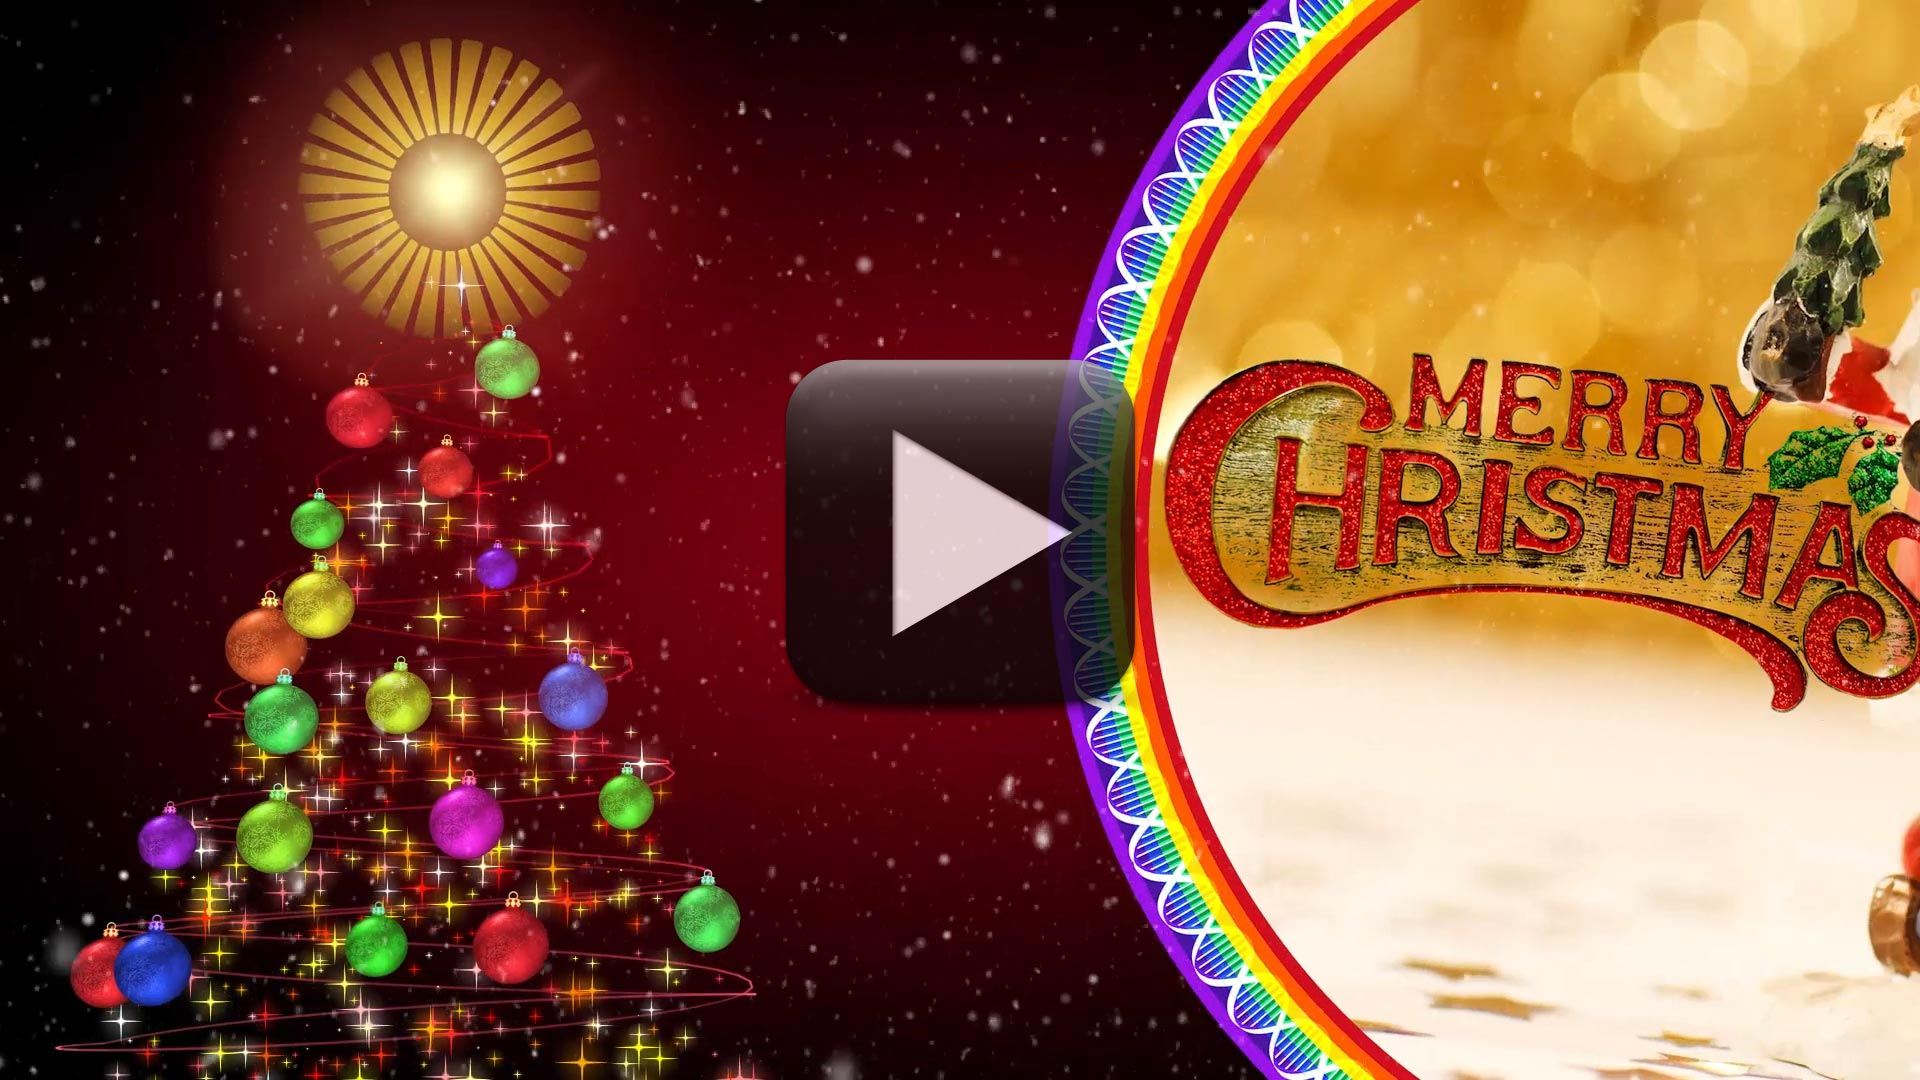 Merry christmas greetings video free download all design creative m4hsunfo